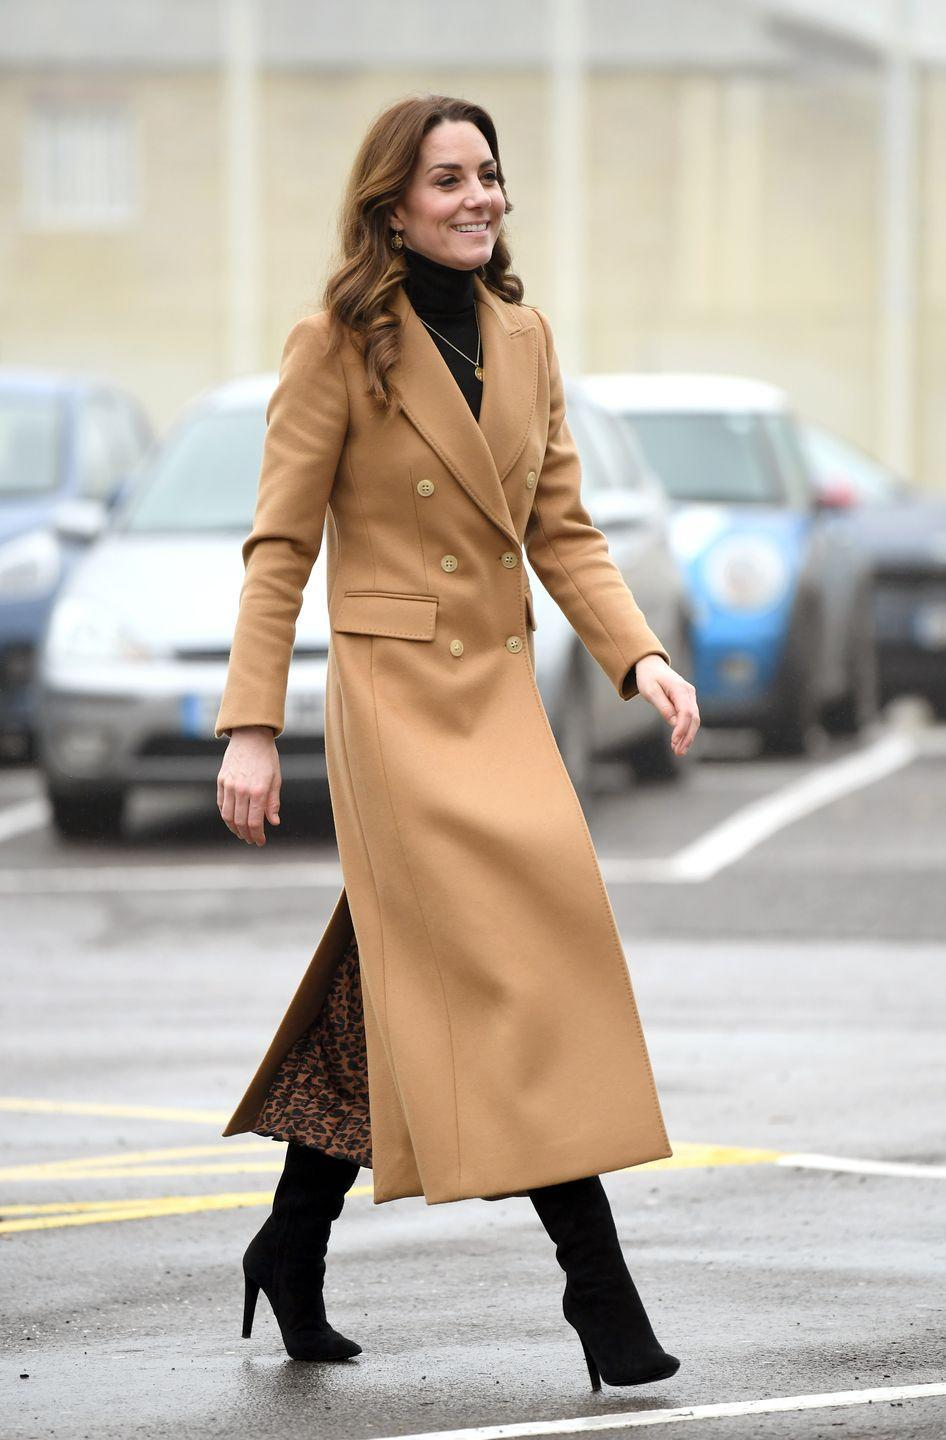 "<p>Kate Middleton chose a camel coat, heeled boots, skirt, and turtleneck for a visit to Wales. The Duchess was there <a href=""https://www.townandcountrymag.com/society/tradition/a30613232/kate-middleton-survey-uk-tour-announcement/"" rel=""nofollow noopener"" target=""_blank"" data-ylk=""slk:to promote her new survey about early childhood development"" class=""link rapid-noclick-resp"">to promote her new survey about early childhood development</a>.</p>"